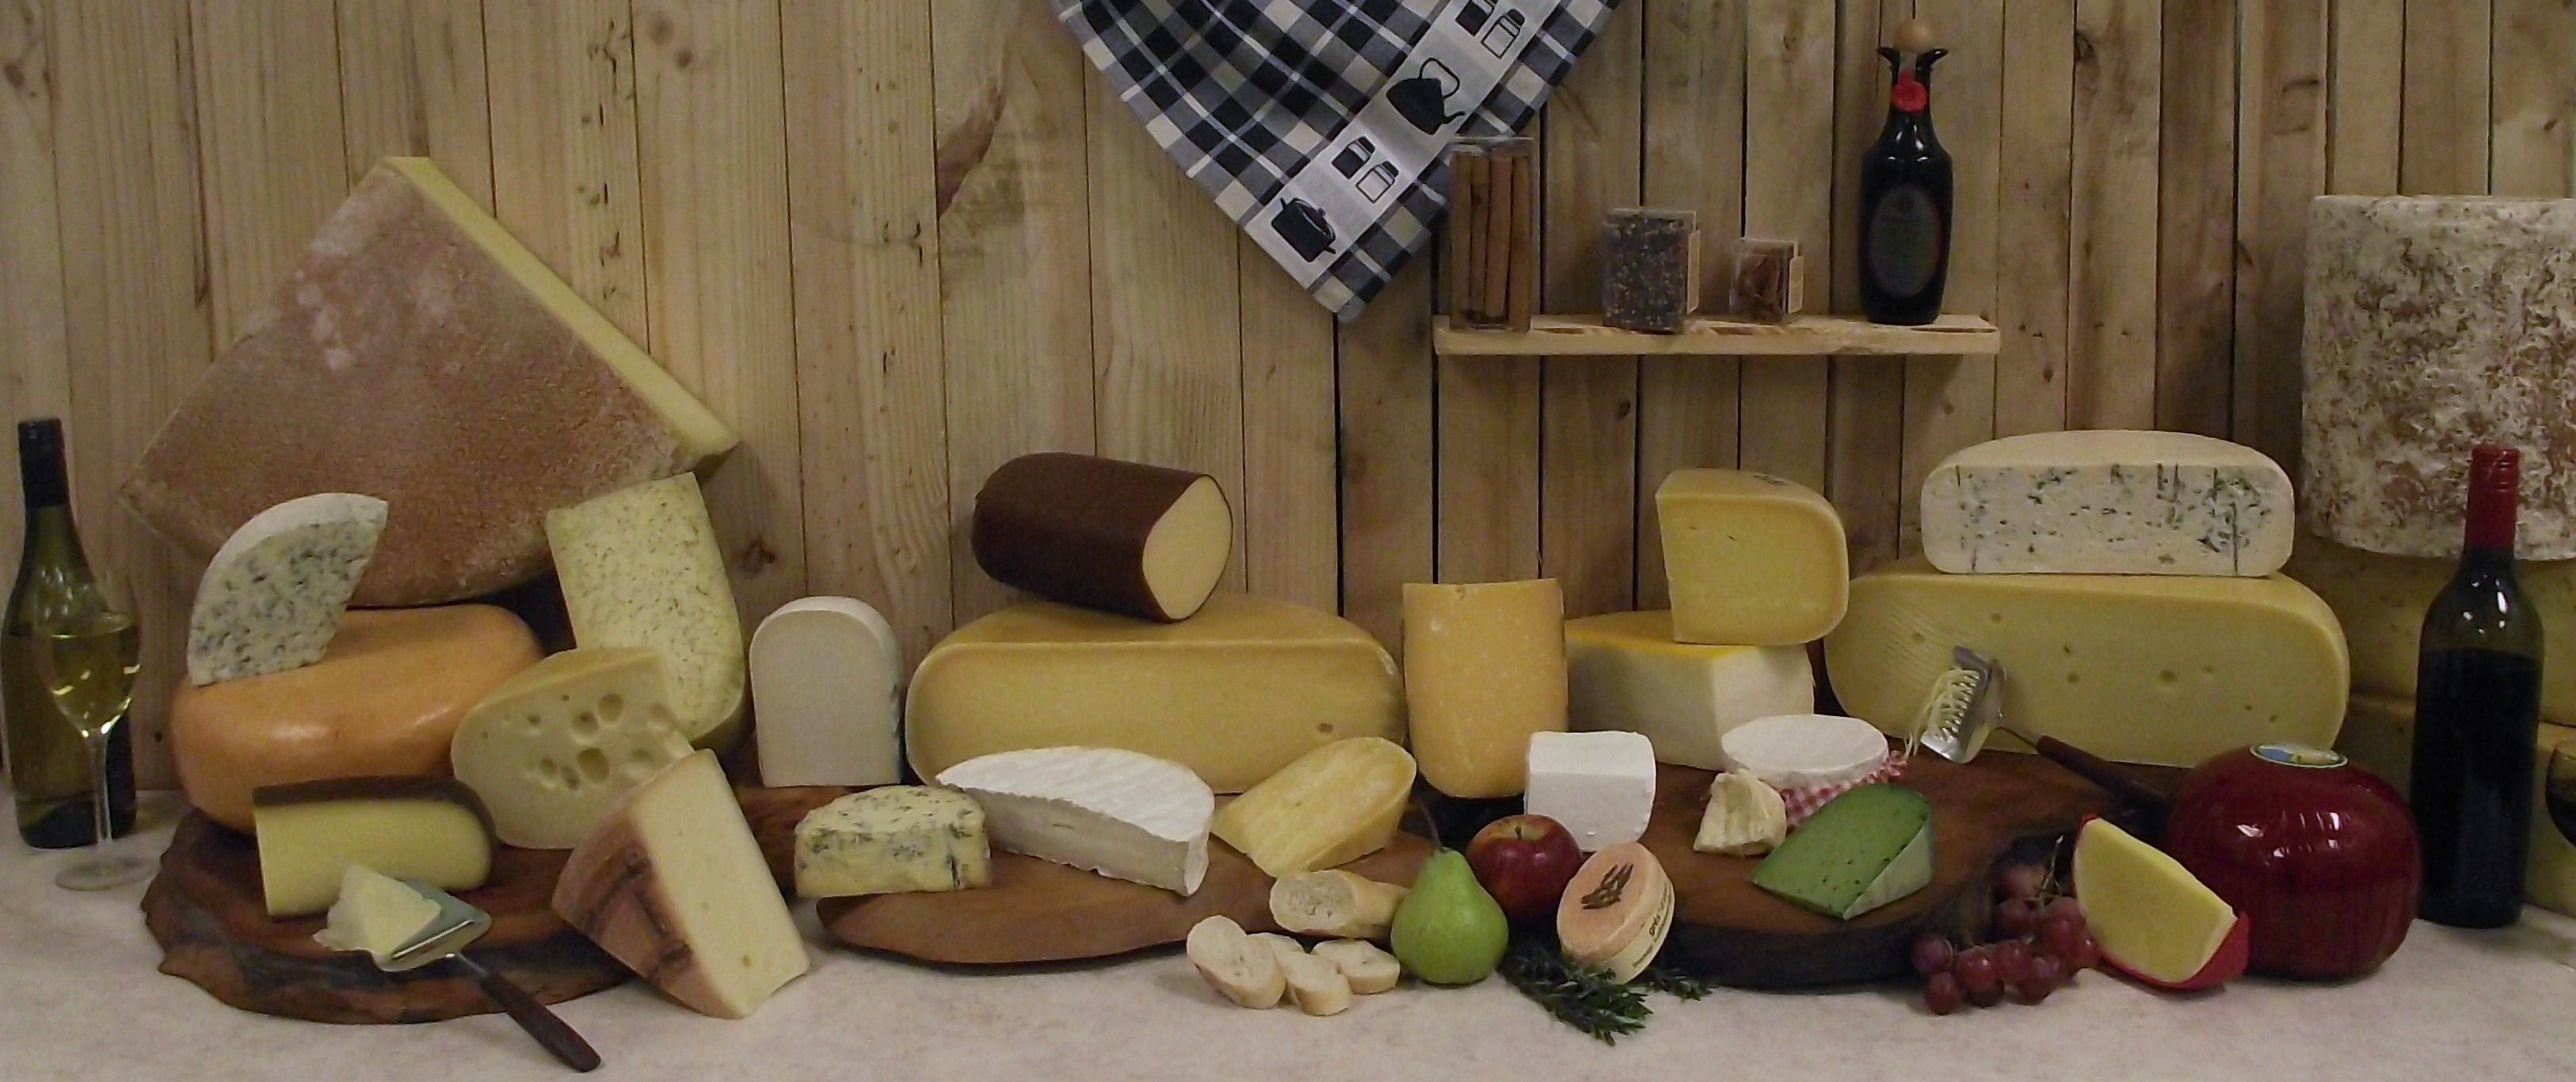 cheese selection.JPG